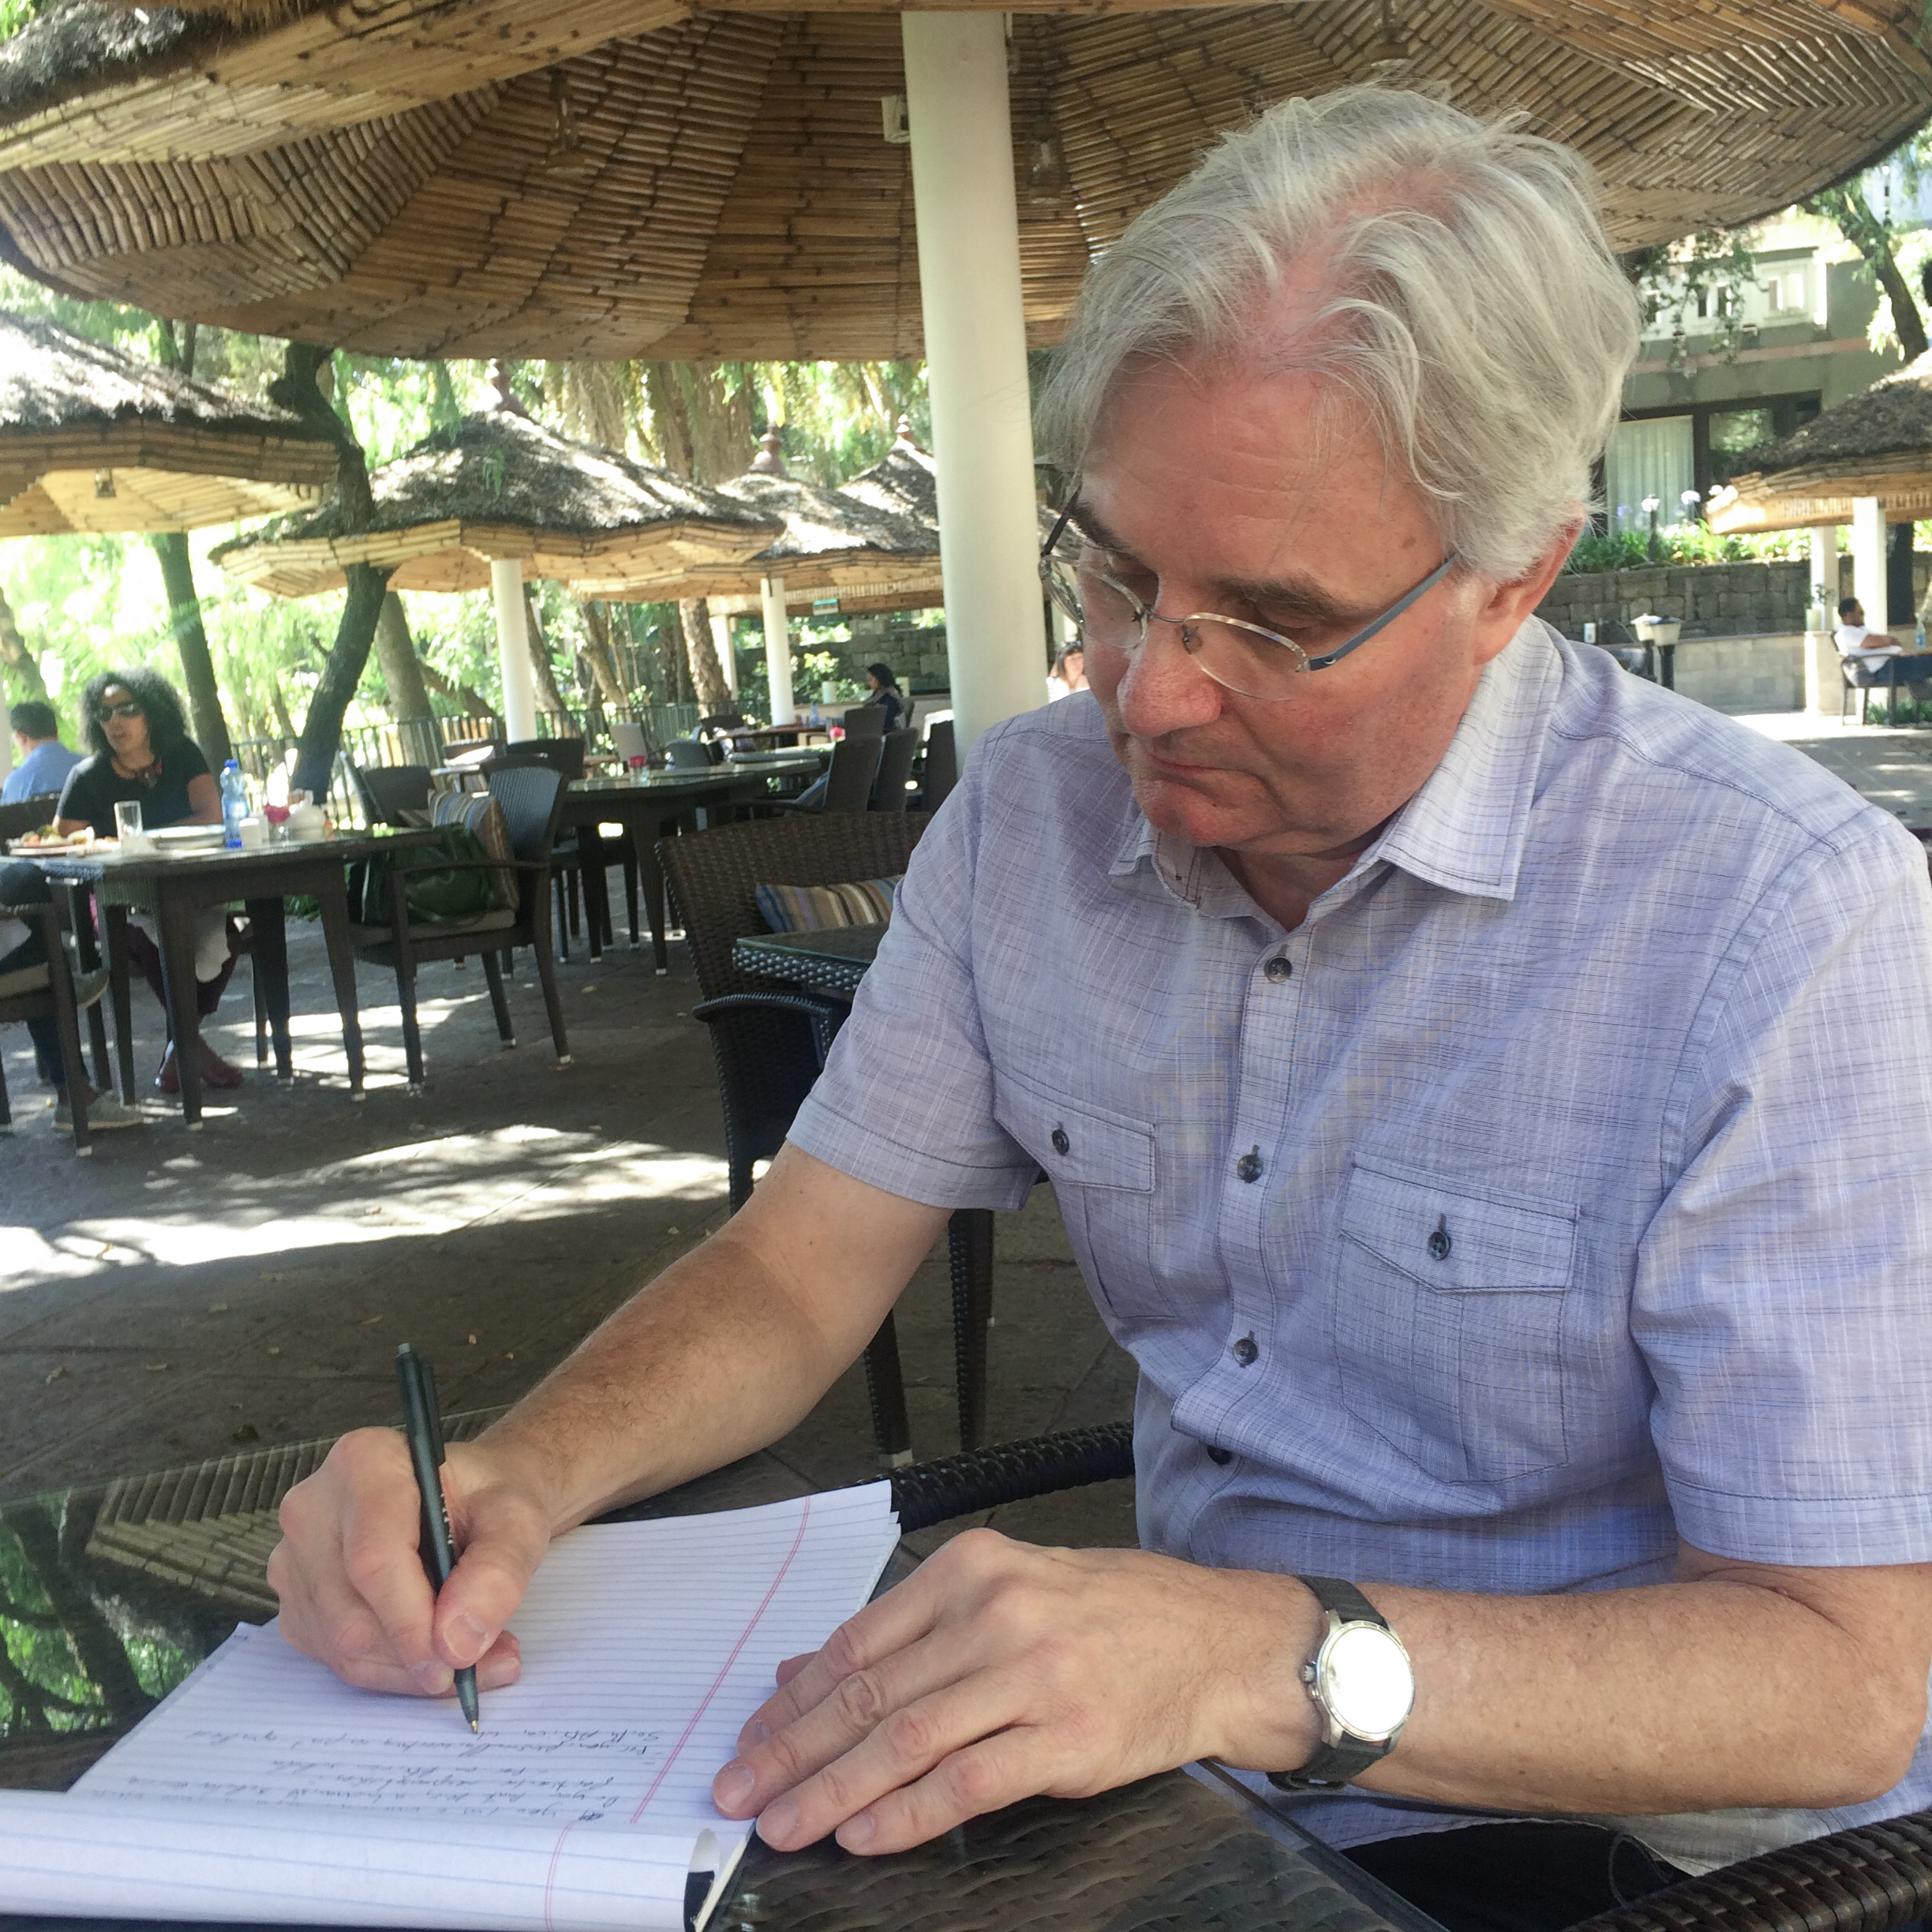 Steve checks his notes at the historic Addis Hilton